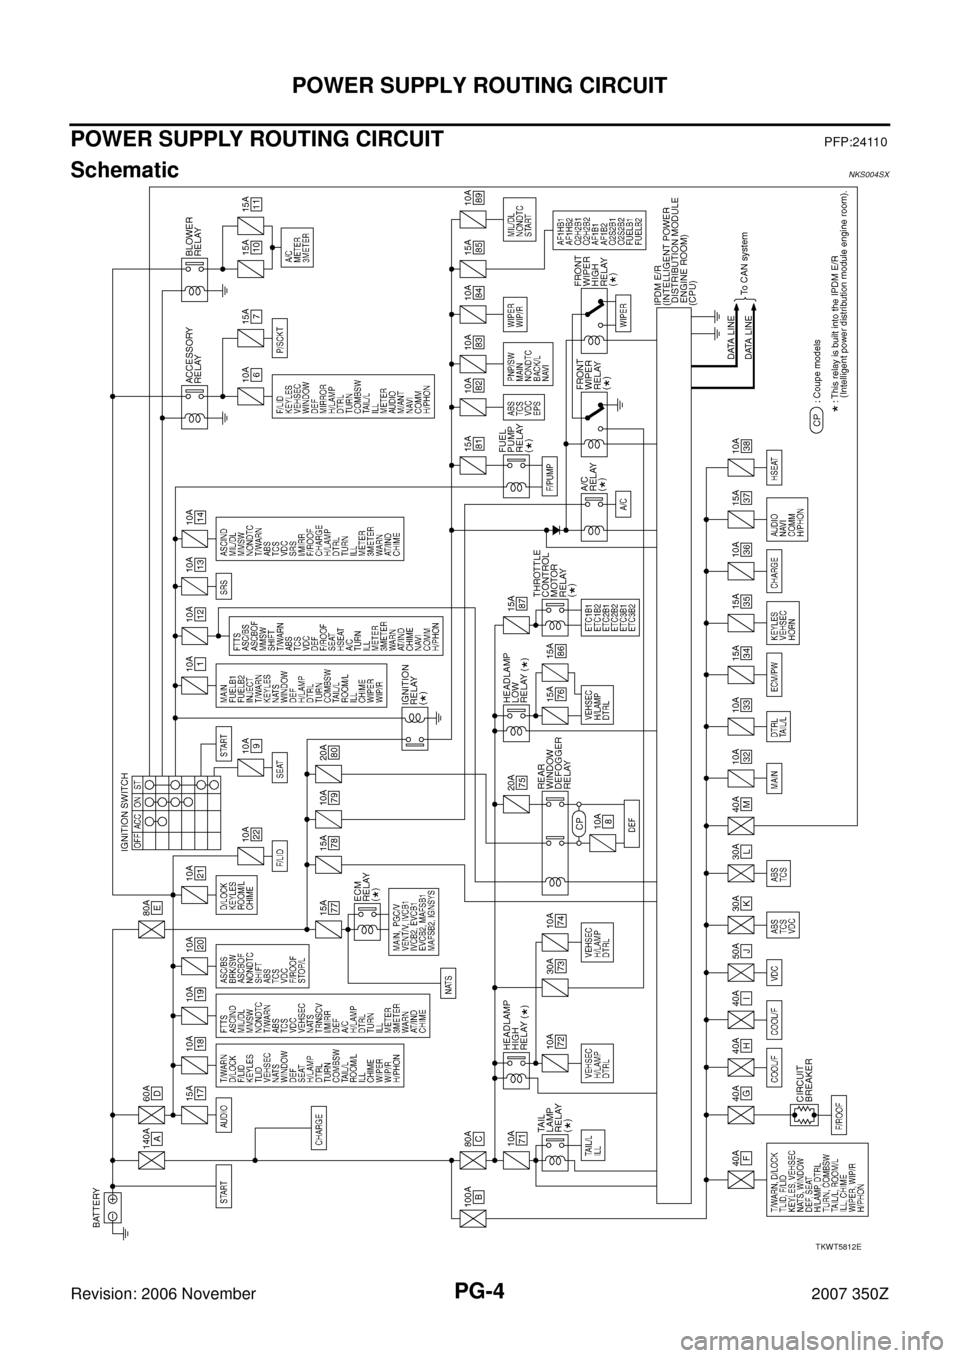 2013 Ford Fiesta Wiring Diagram 2006 Jeep Wiring Diagram Wiring Diagram Schematics